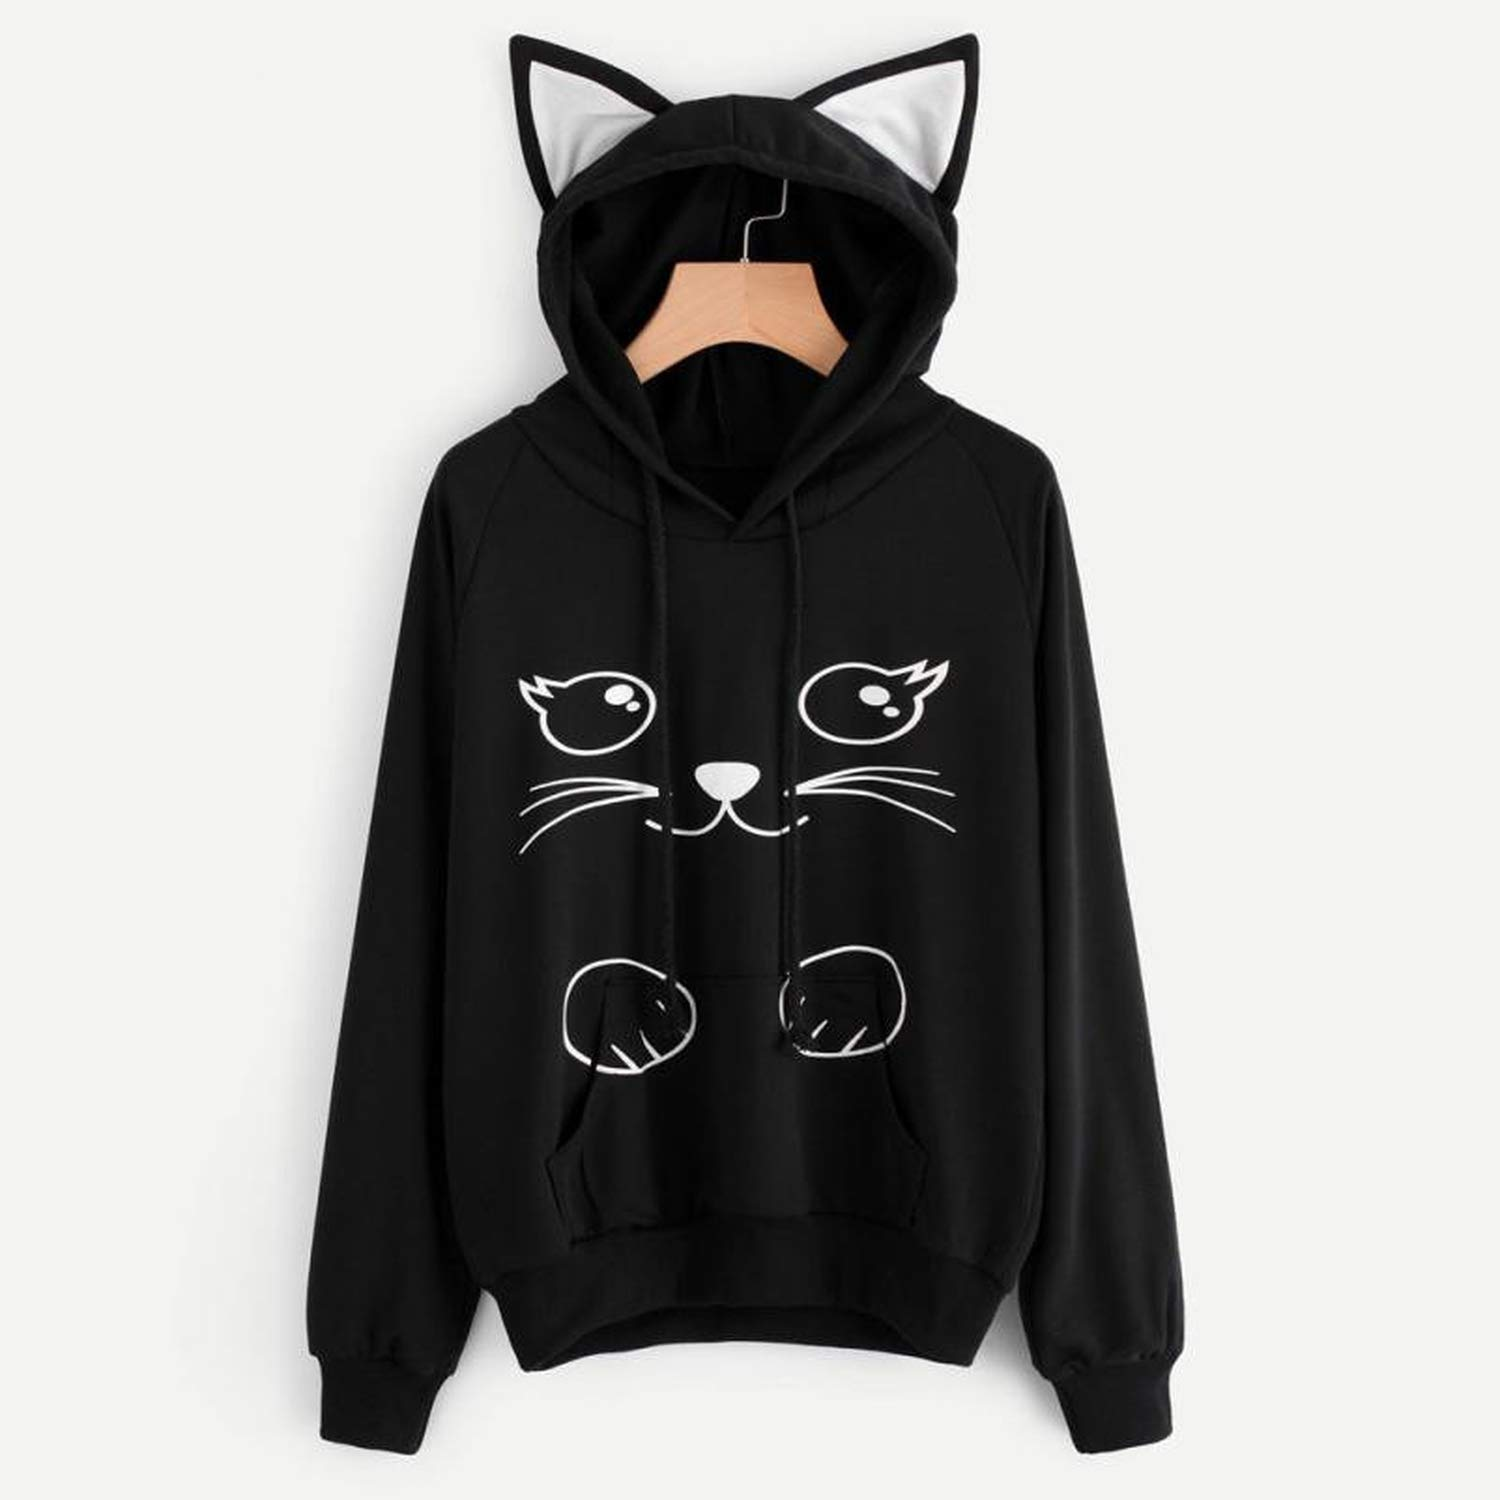 Hoodies Sweatshirt Womens Fashion Autumn Lovely Cat Printed Long Sleeve Sweatshirt Hooded Pullover Tops Sudadera Mujer, Black, L, United States at Amazon ...